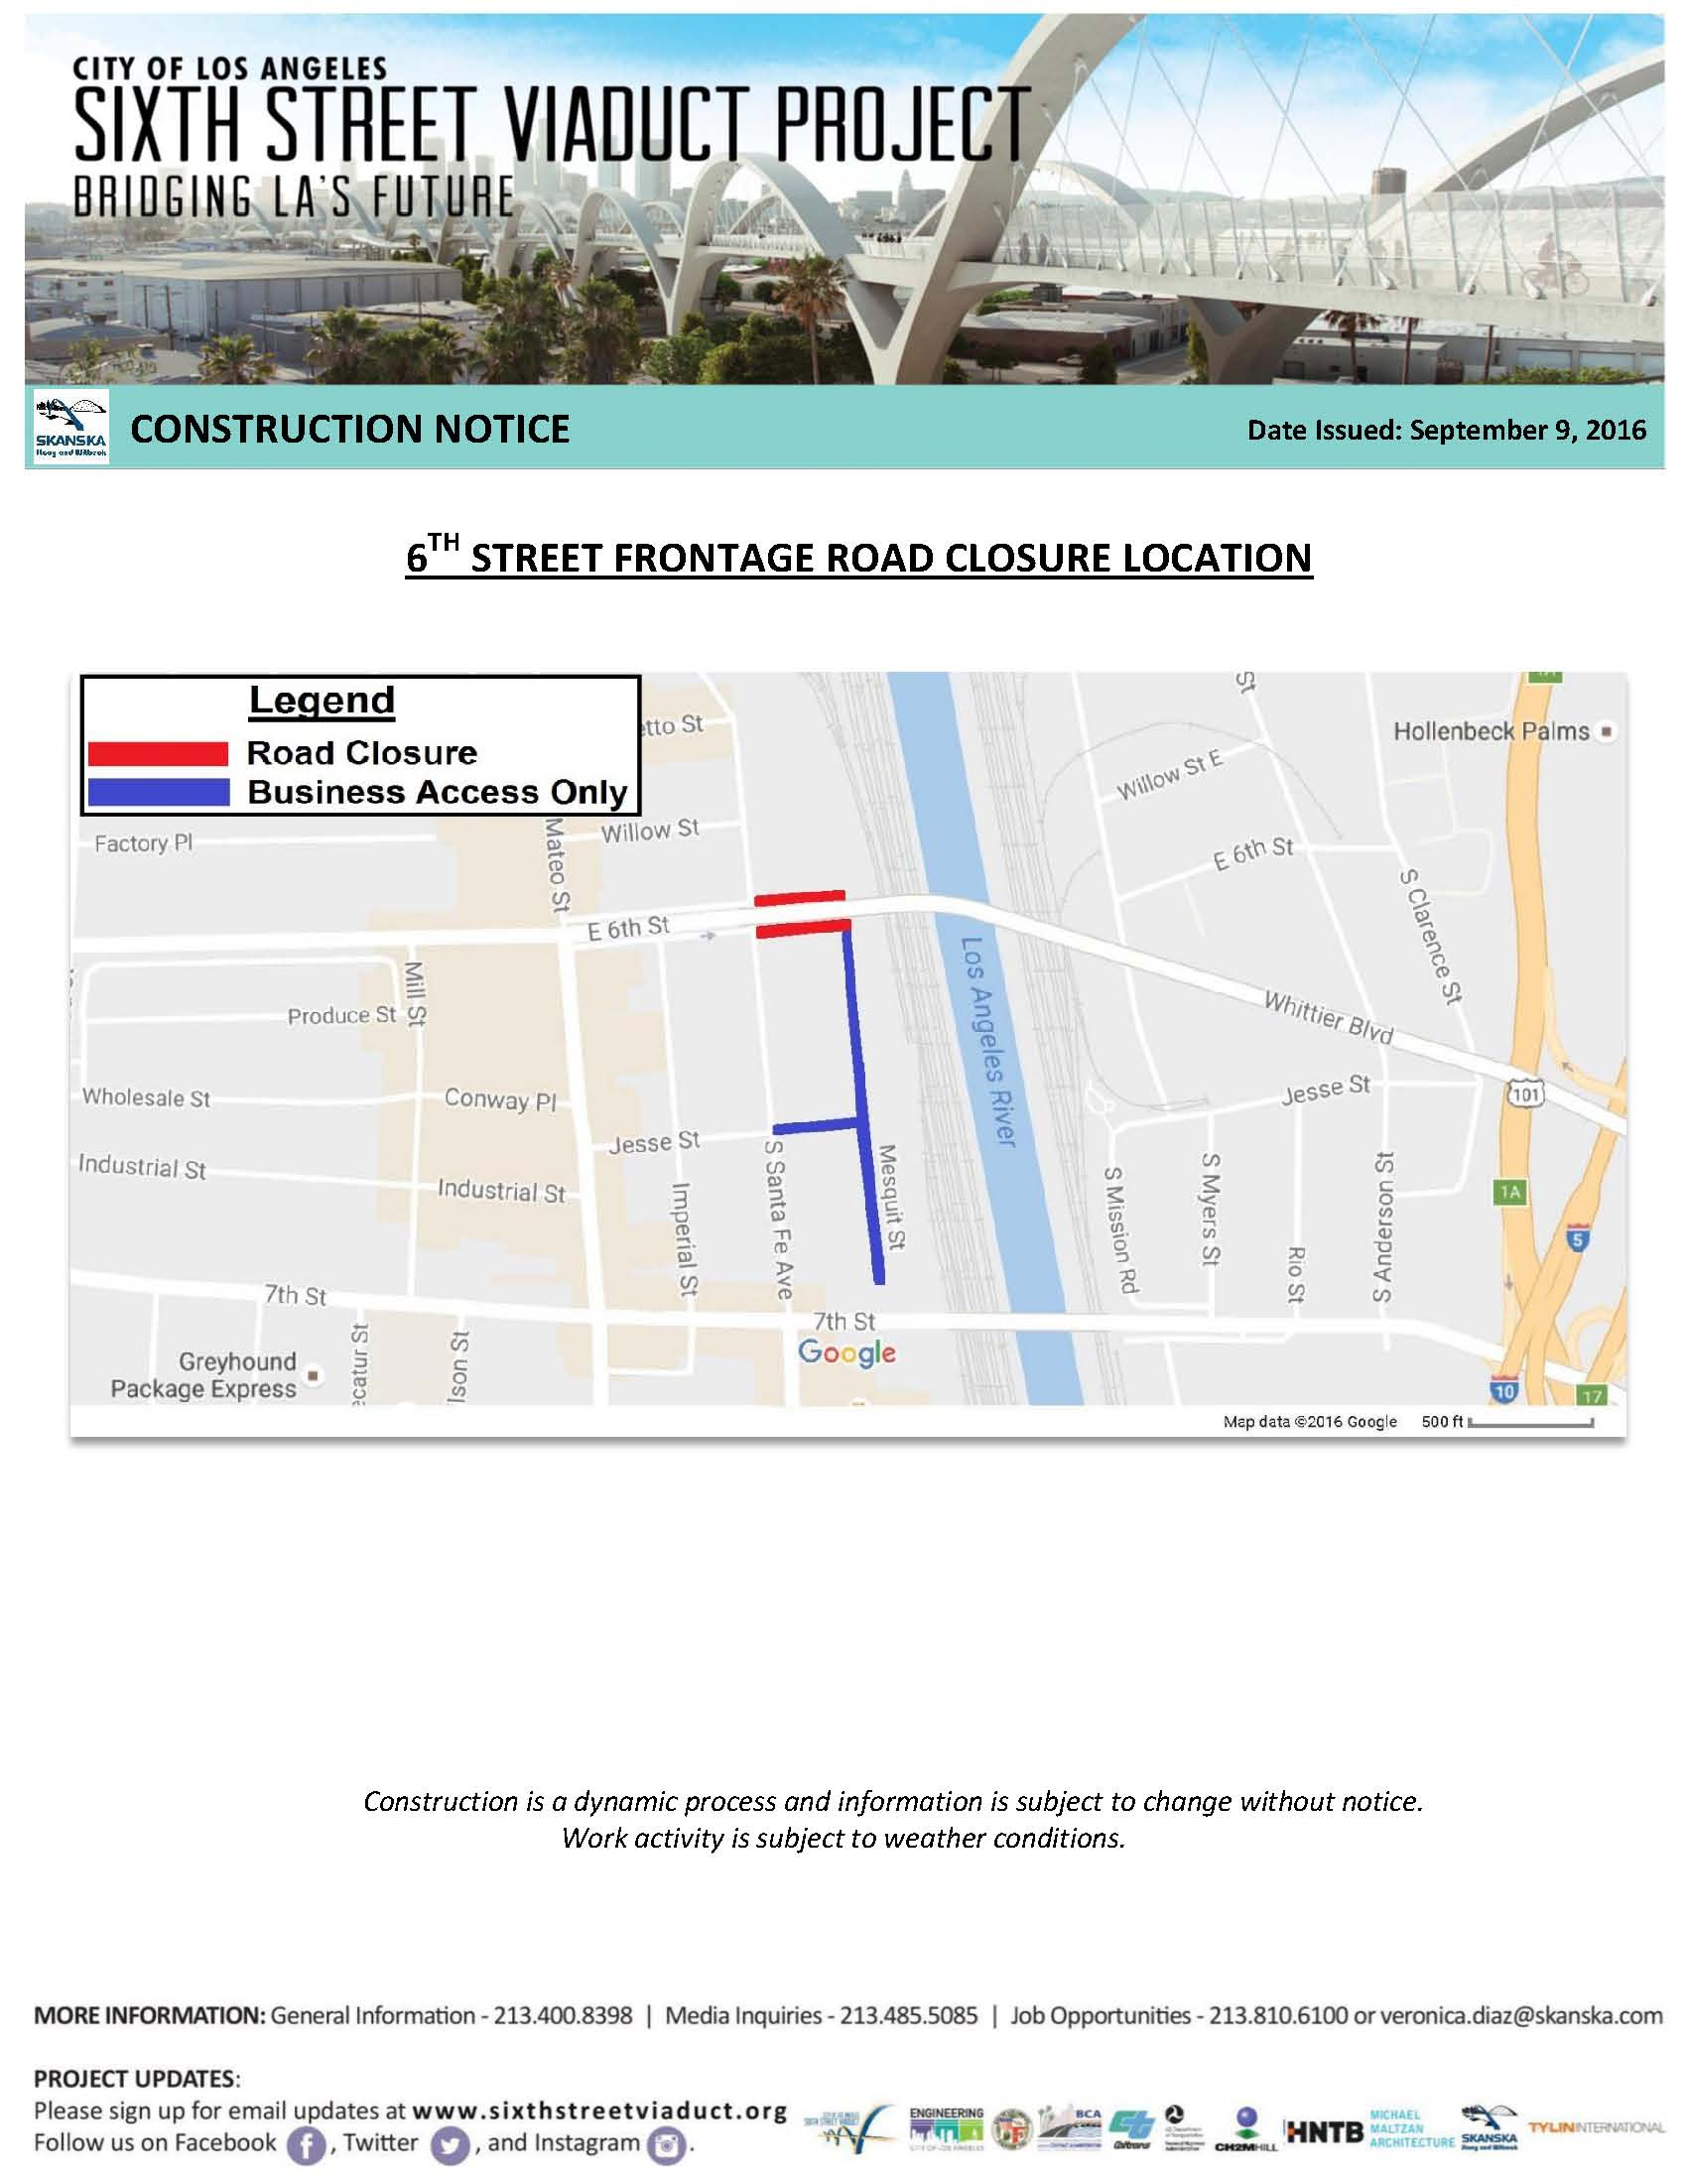 2016-09-09_SSW_Constrction_Notice_-_6th_St._Frontage_Rd._Closure_Page_2.jpg